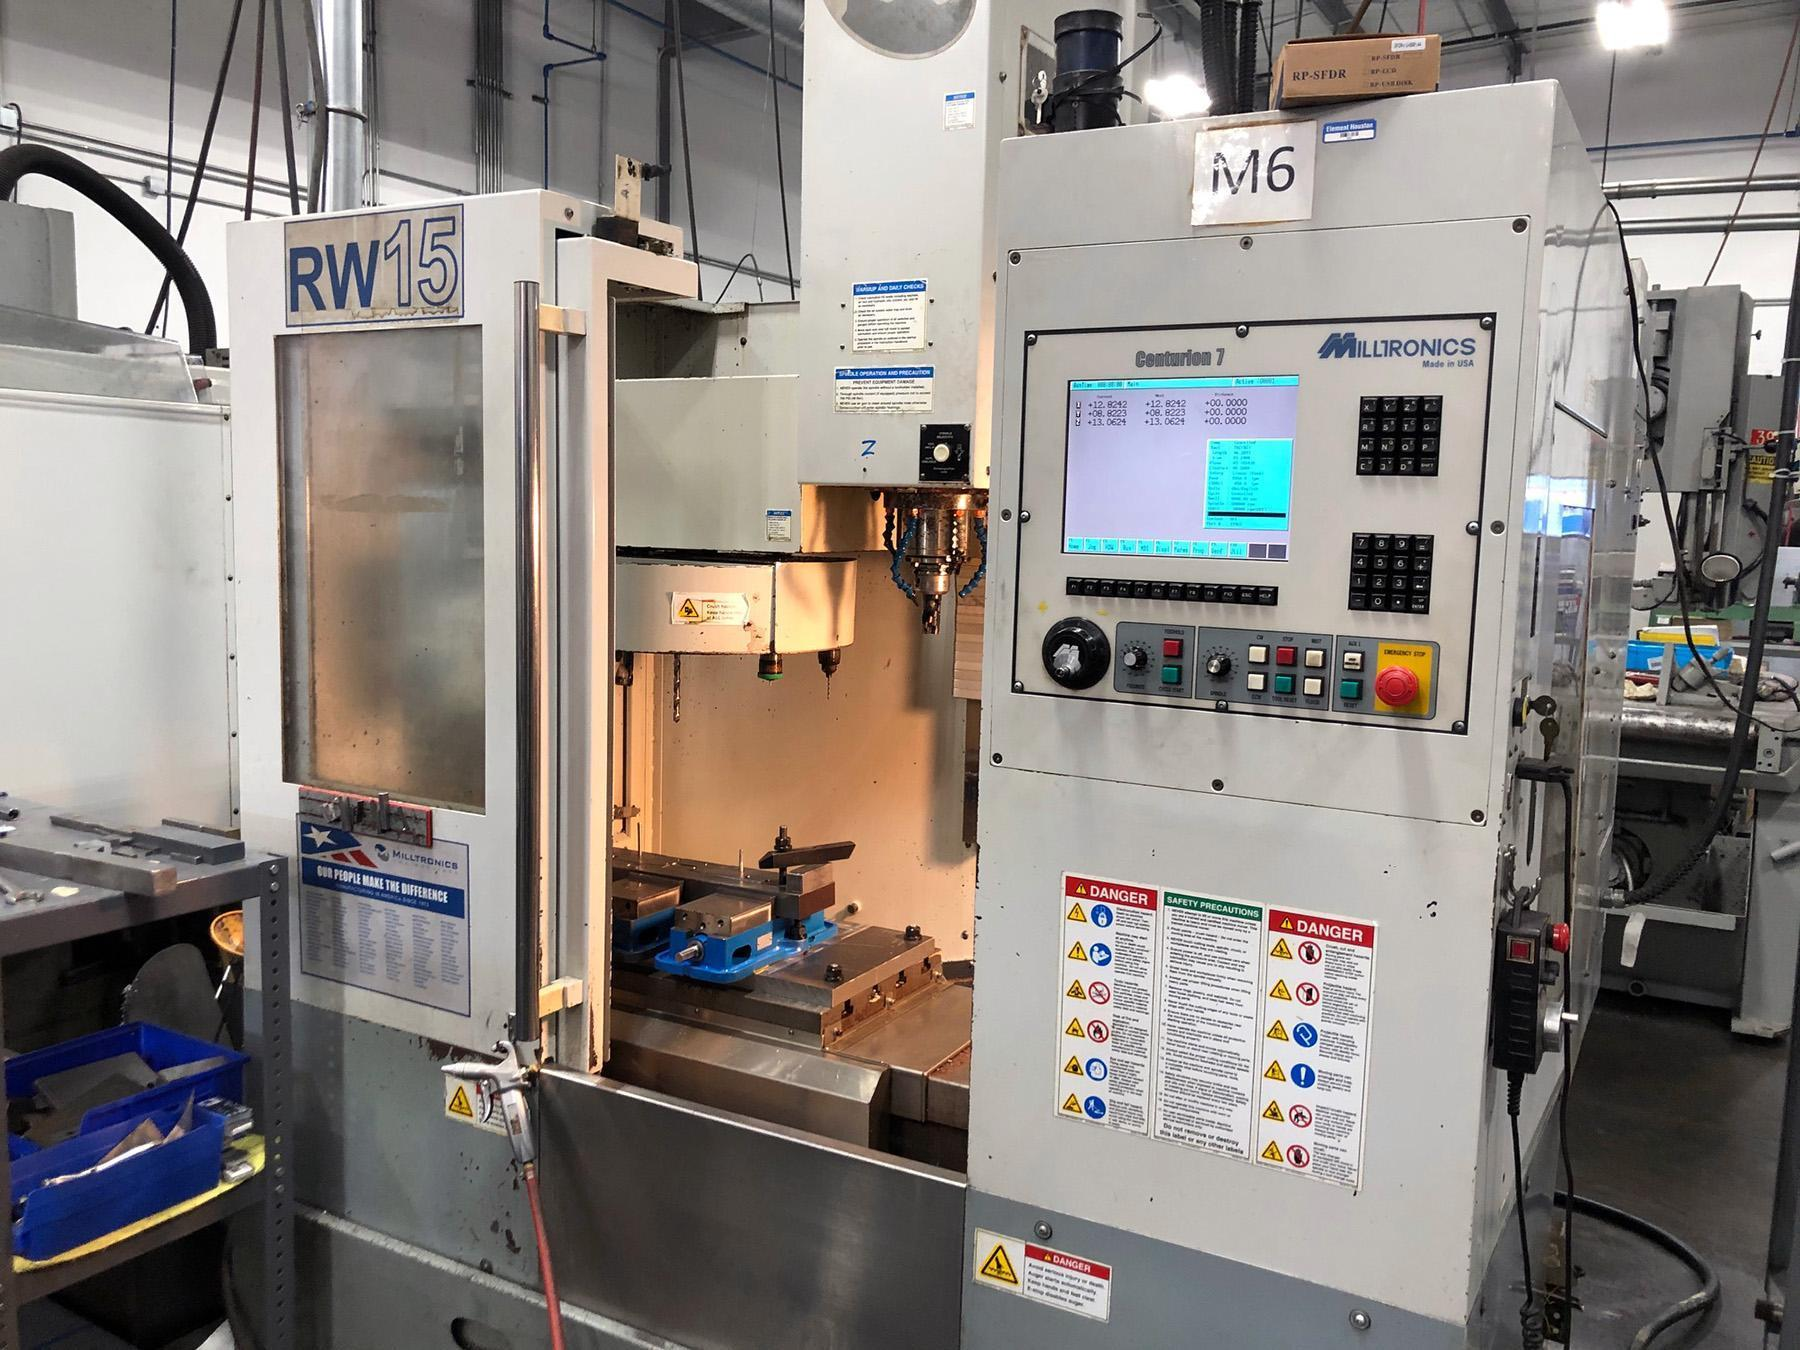 USED, MILLTRONICS MODEL RW15 SERIES C CNC VERTICAL MACHINING CENTER